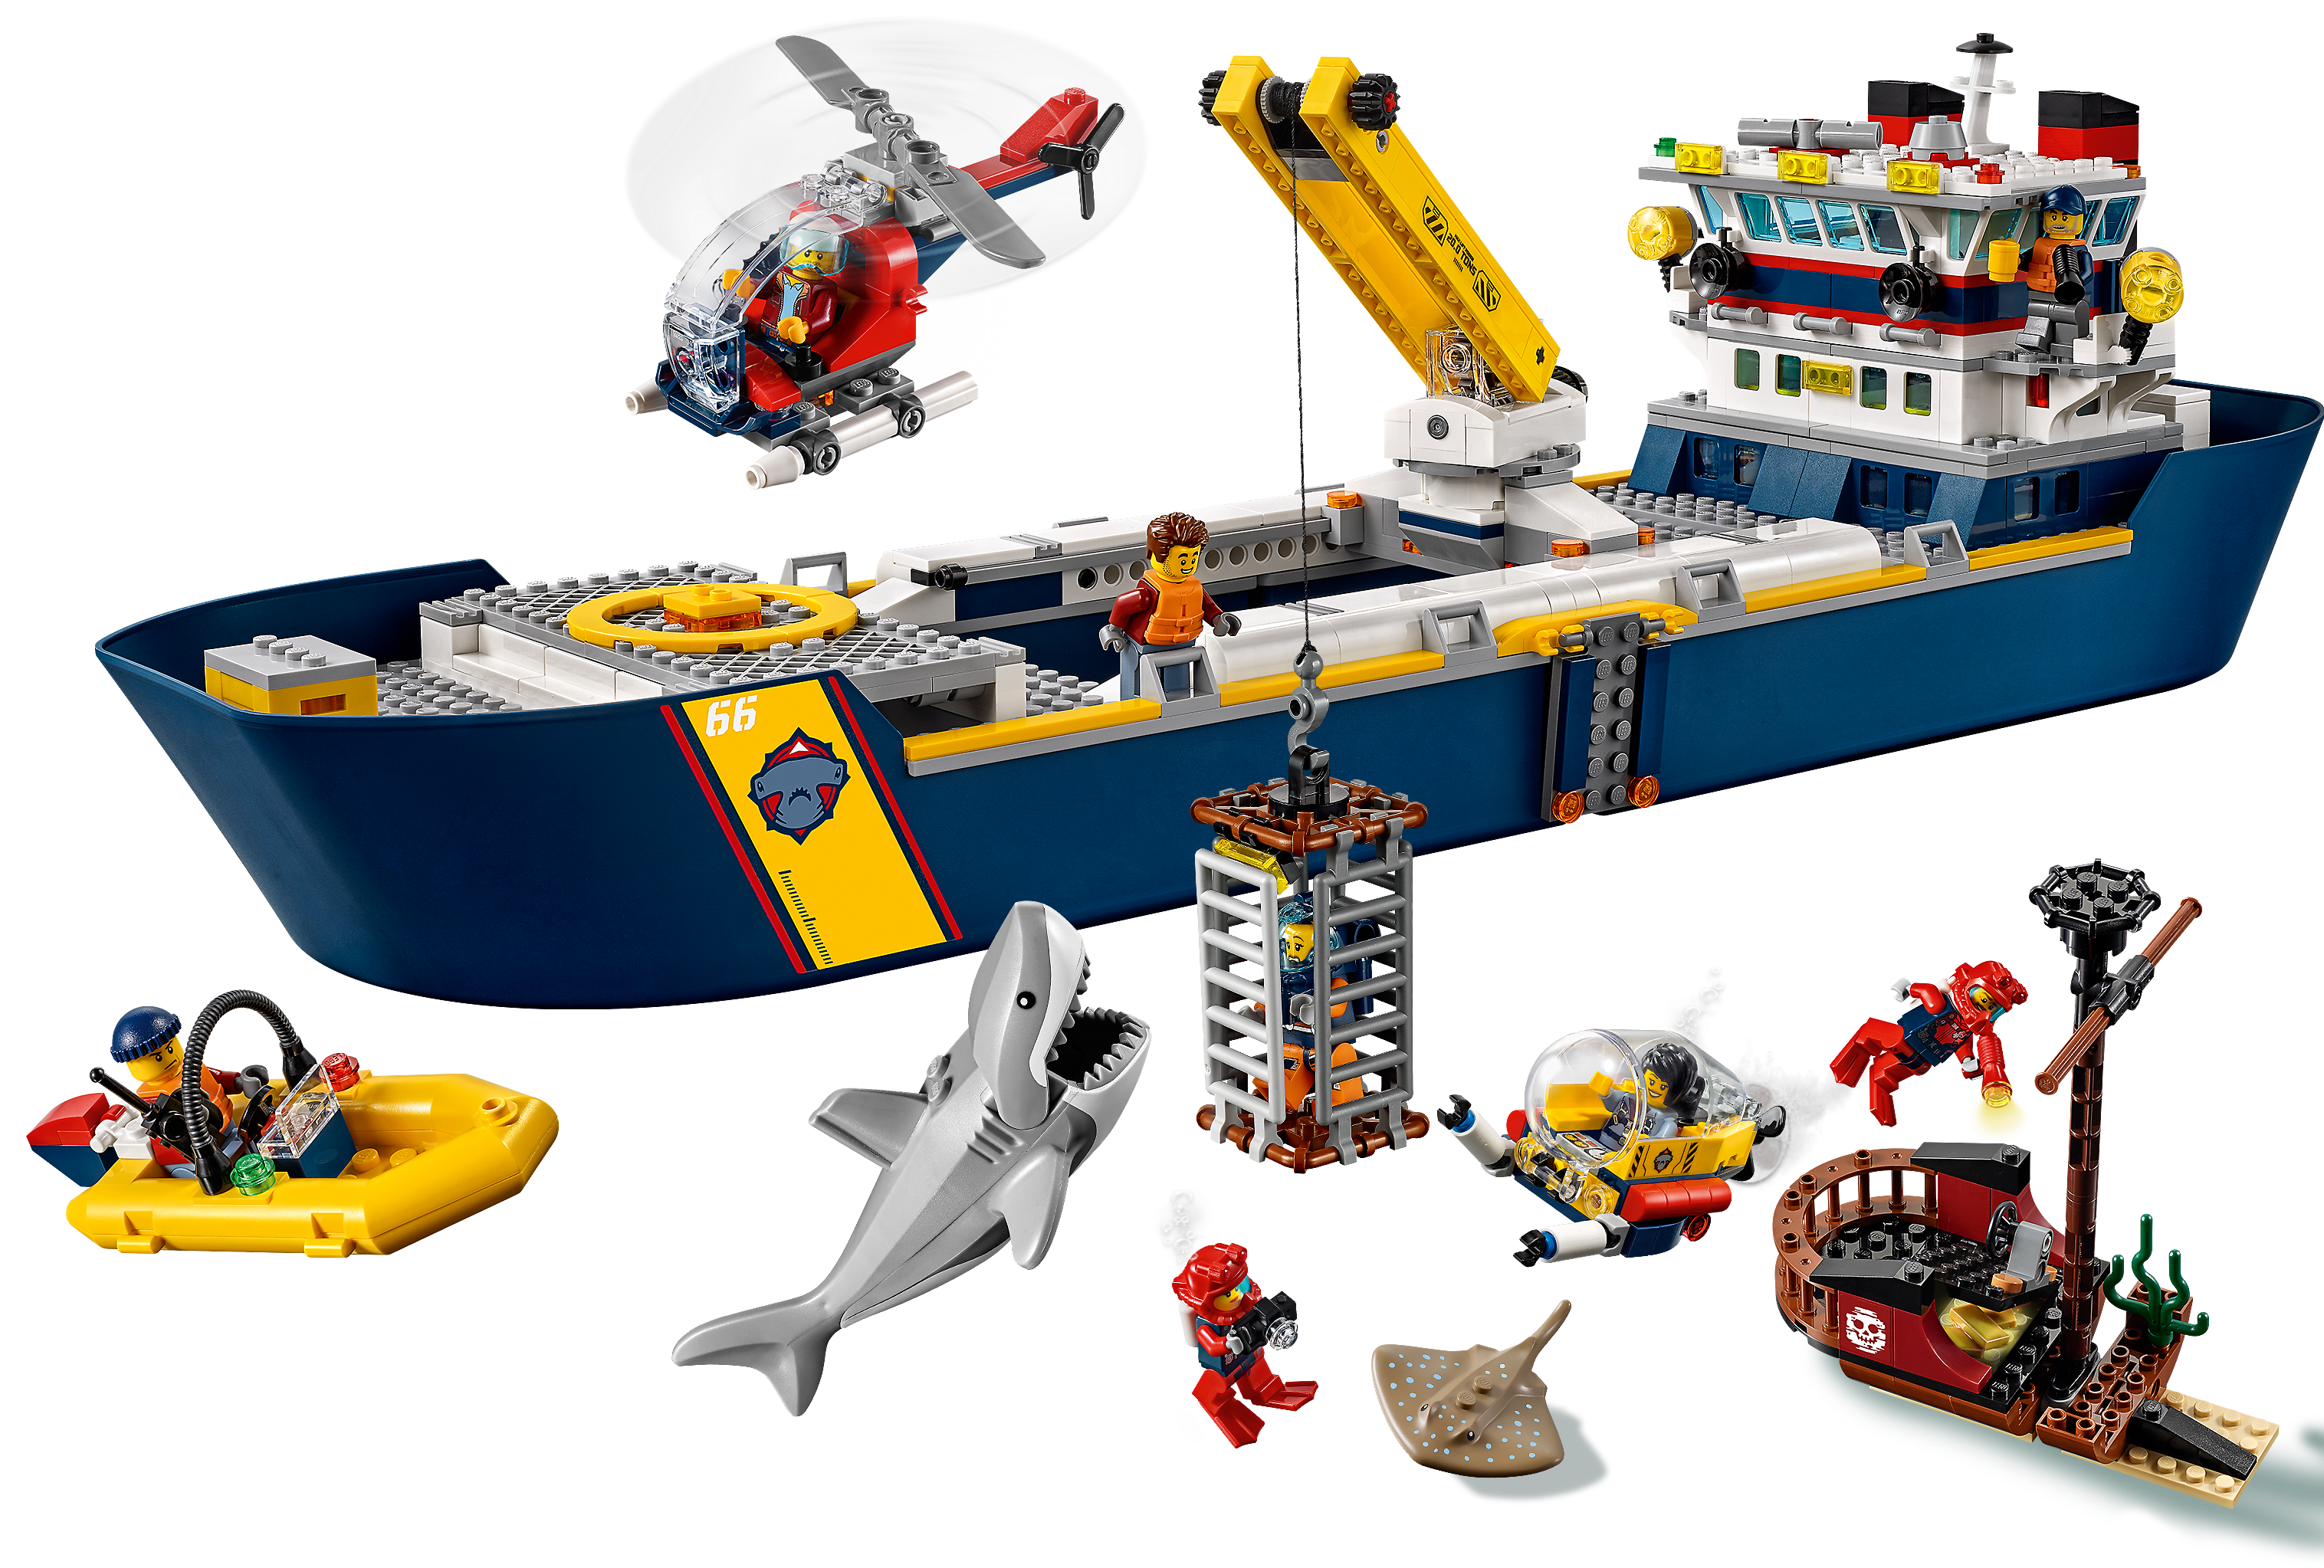 Ocean Exploration Ship 60266 City Buy Online At The Official Lego Shop Us